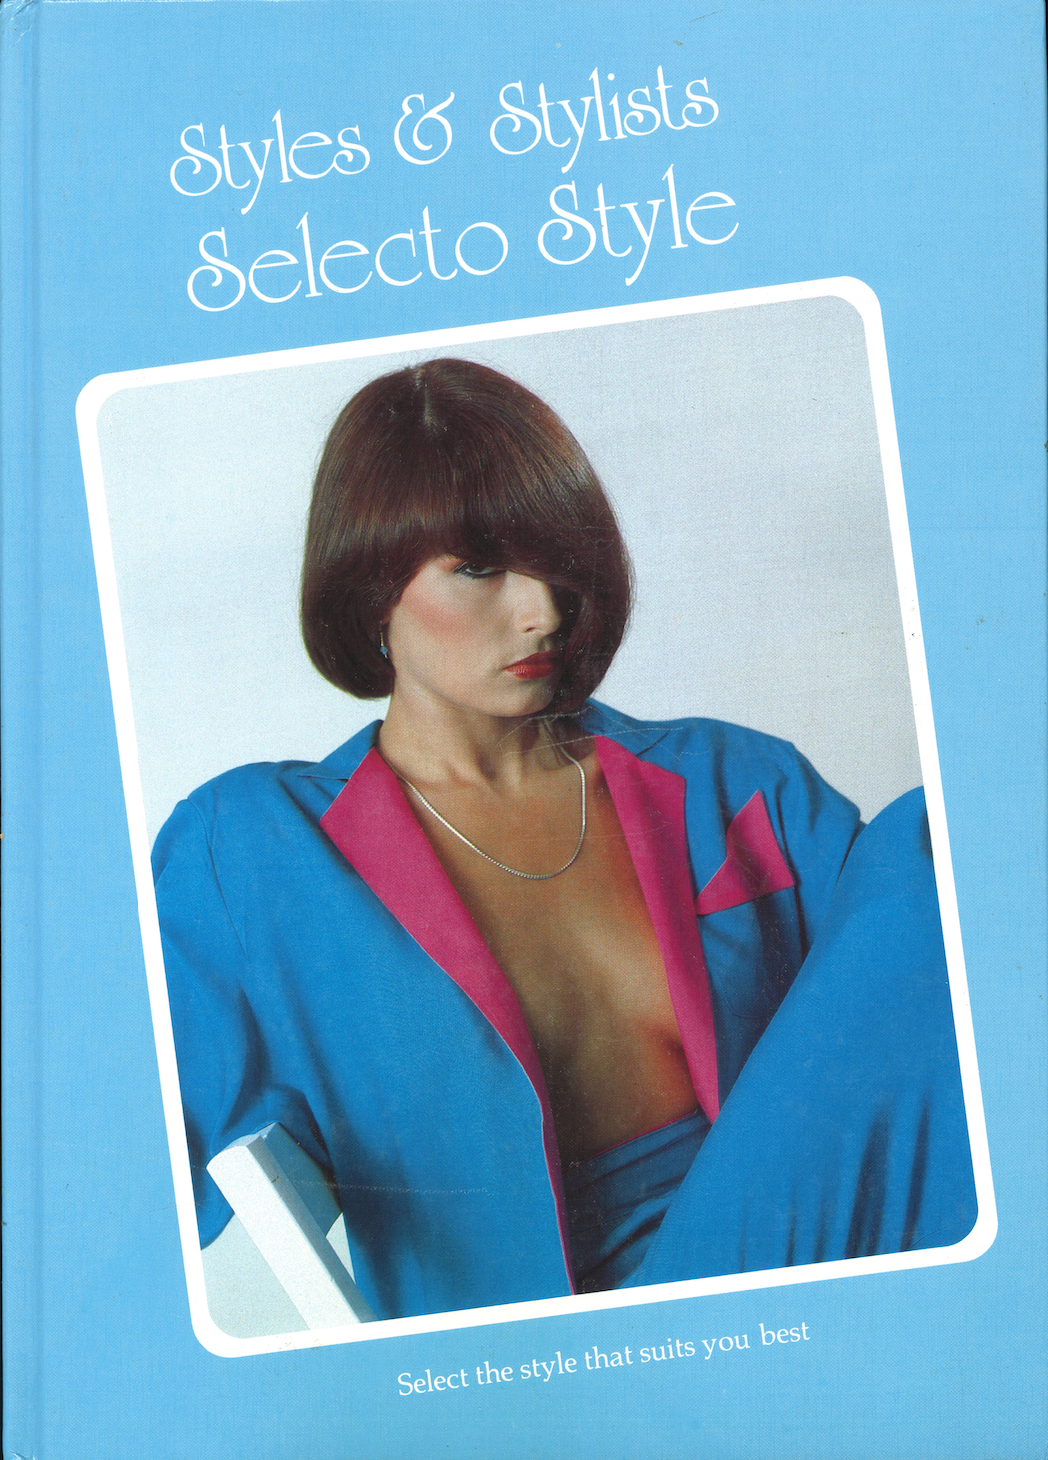 Styles & Stylists Selecto Style: Volume